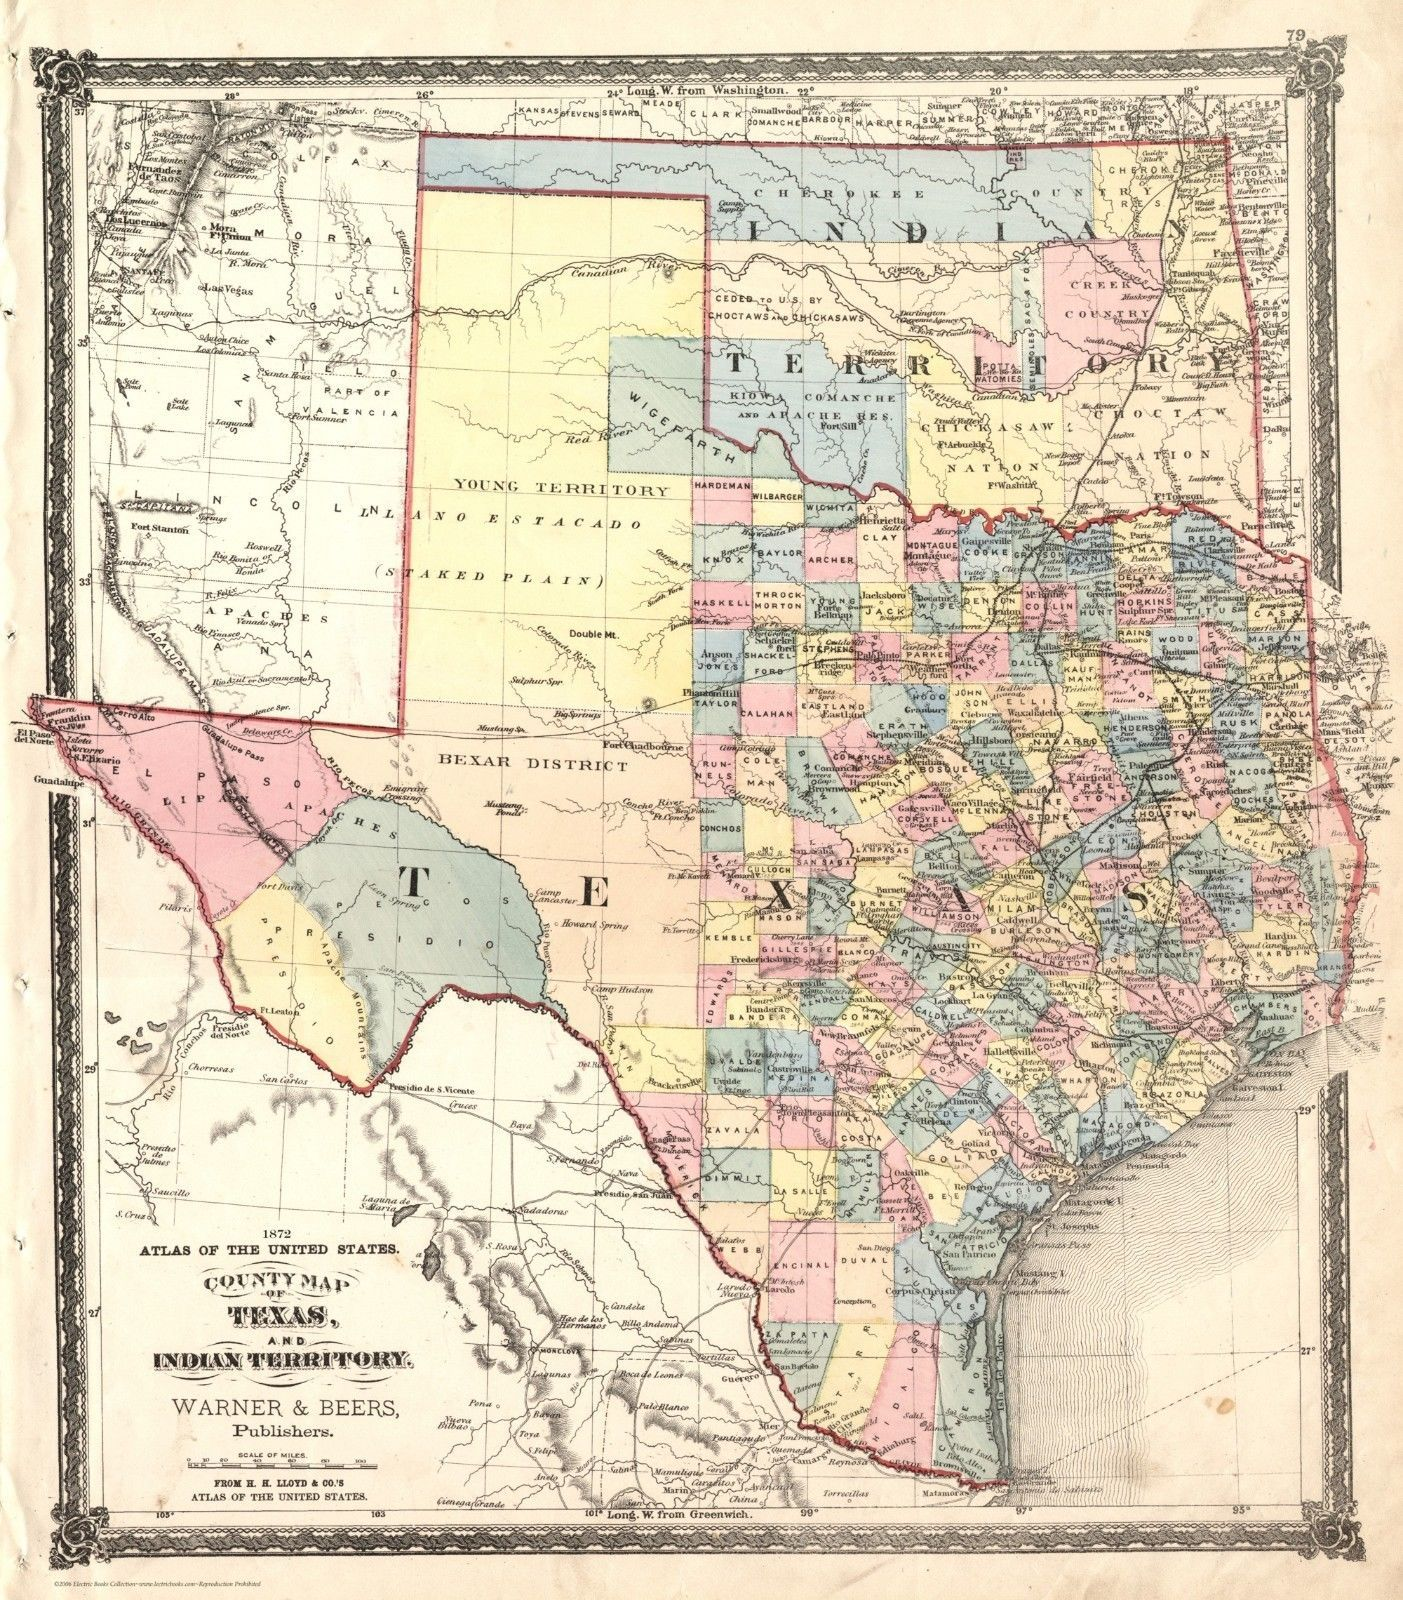 Map Of Texas By County.Details About Fabulous 1872 Texas It County Map Warner Beers Print